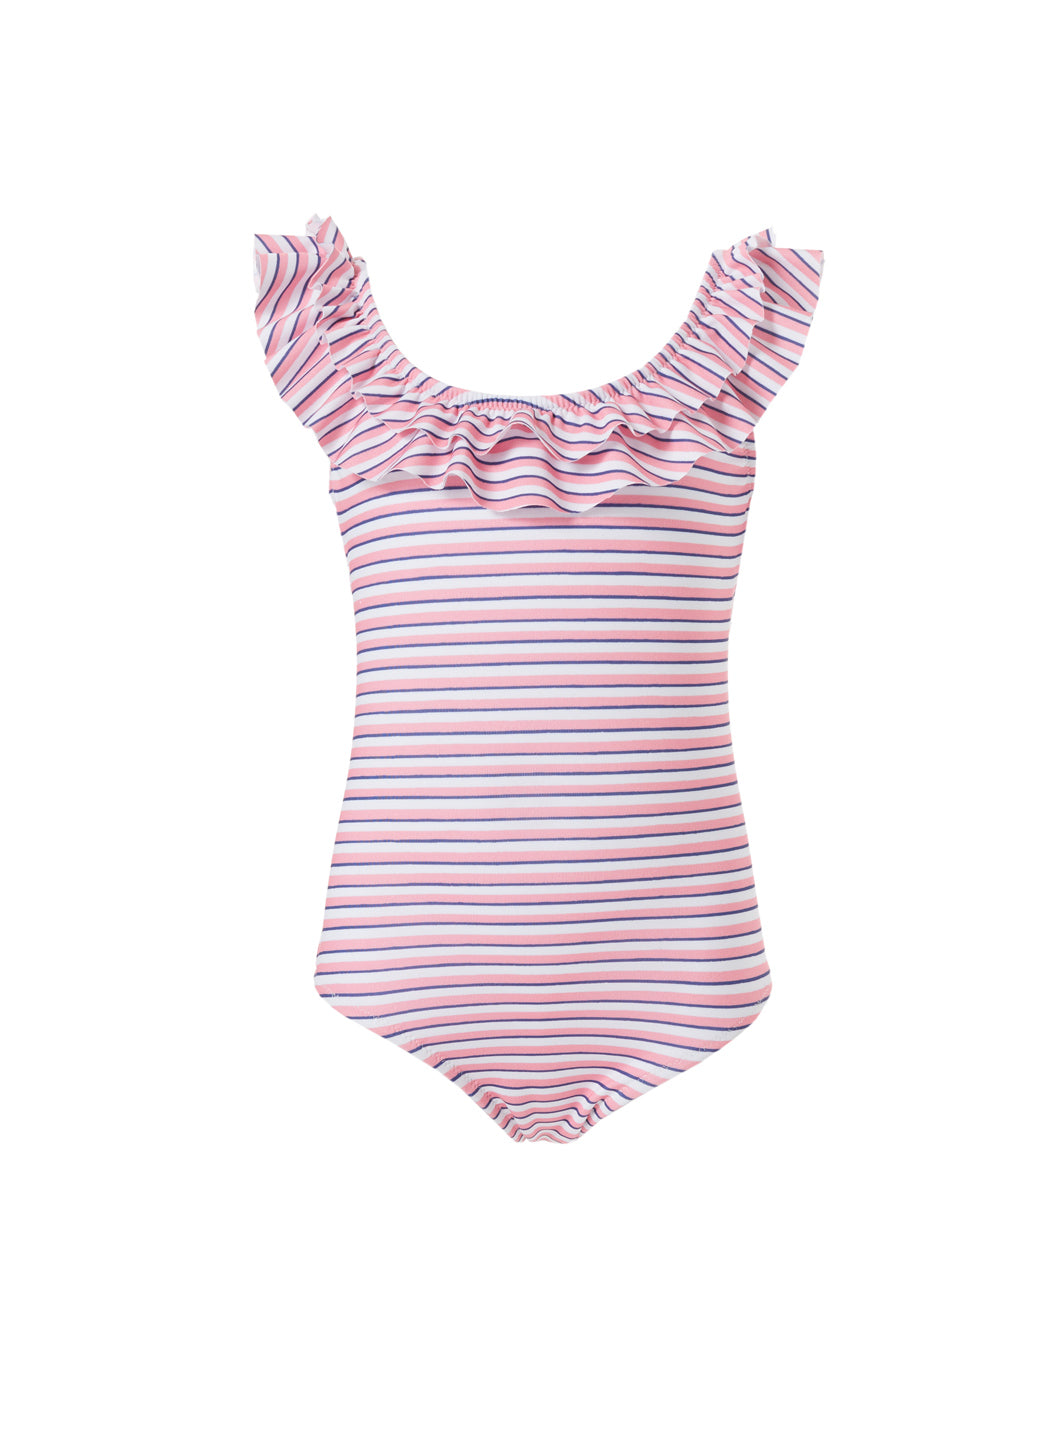 Baby Missy Pink Stripe Over the Shoulder Frill Onepiece Swimsuit - Melissa Odabash Swimwear